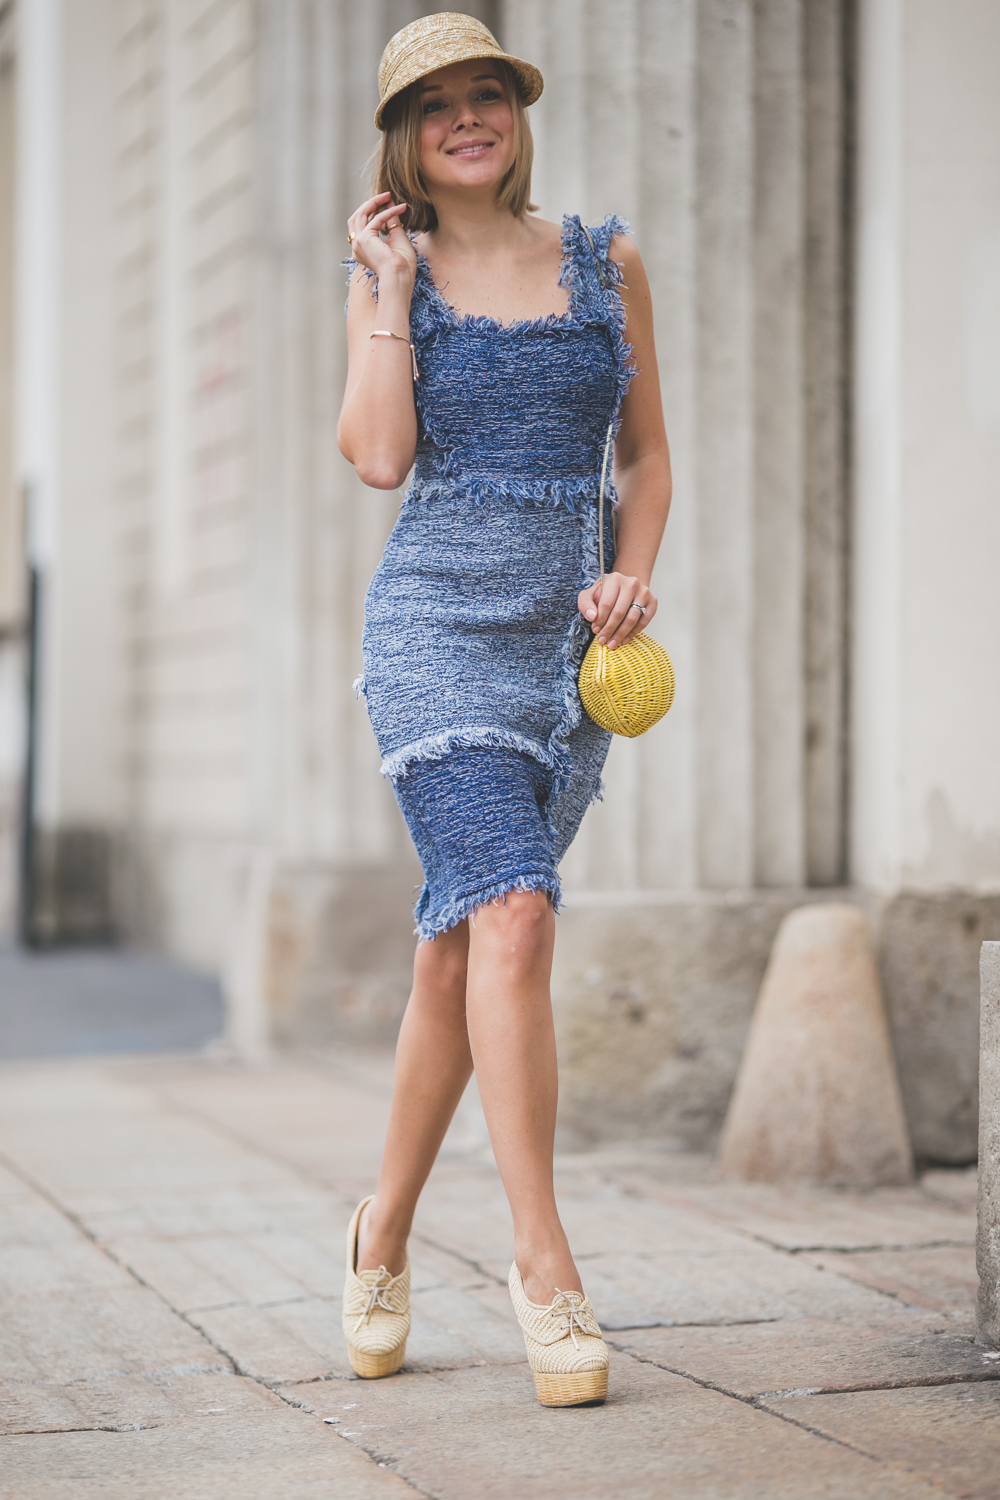 darya kamalova thecablook com russian italian fashion lifestyle blogger in milan for mfw ss15 wearing m missoni denim dress burberry prosum wedges kate spade lemon bag asos visor straw hat casadei atos lombardini presentation -4932